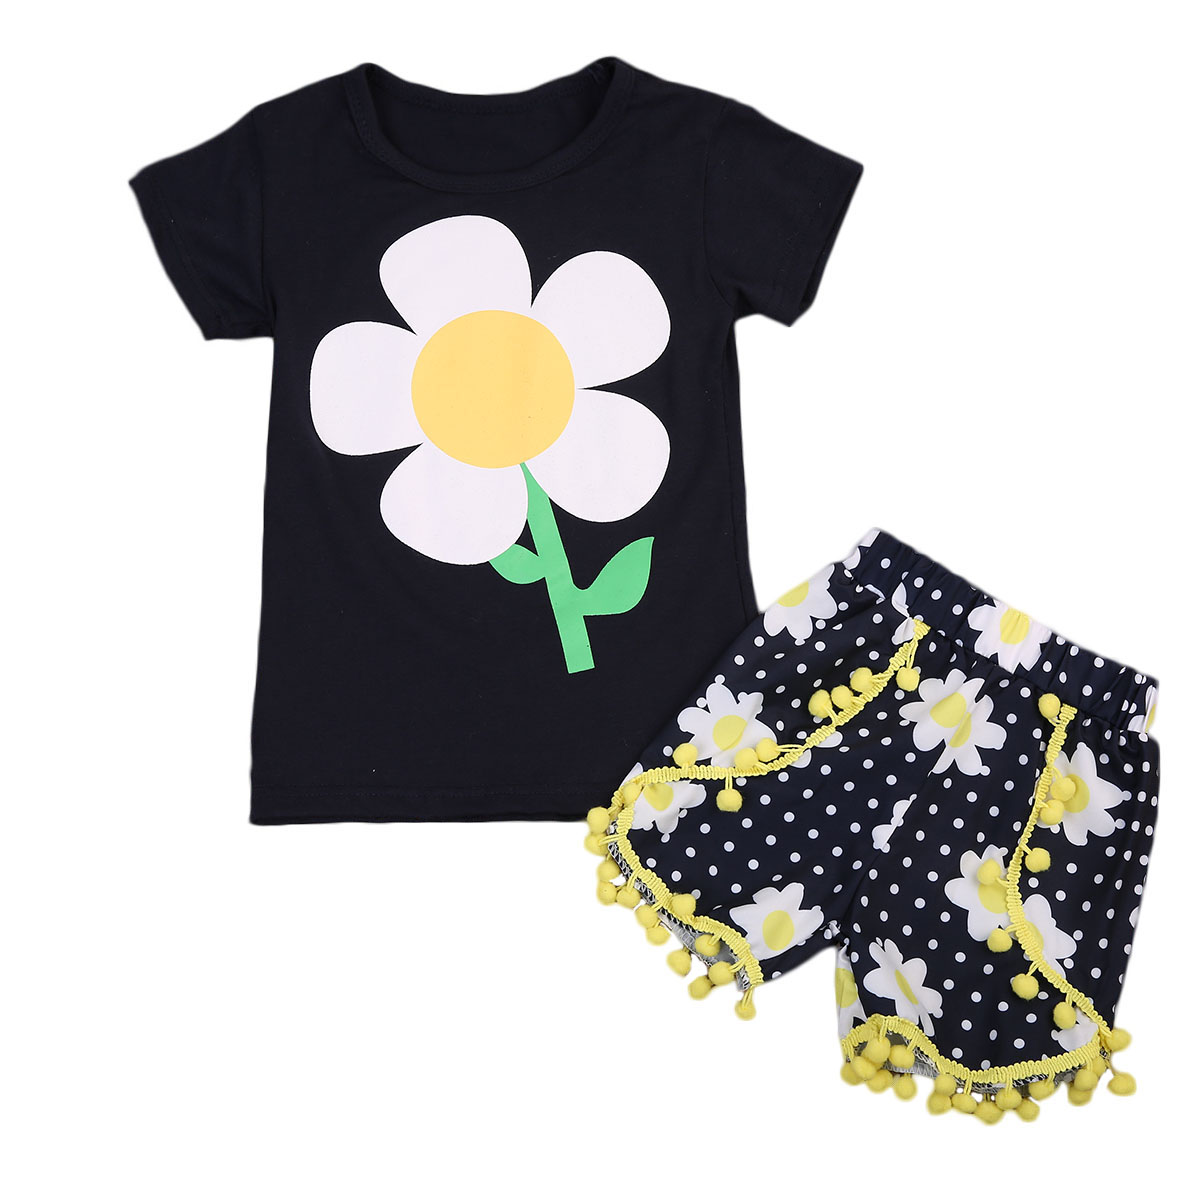 2017 Toddles Kids Girls Sunflower T-shirt Pants 2pcs Set Outfits Black Floral O-neck Clothes Size 1-6Years